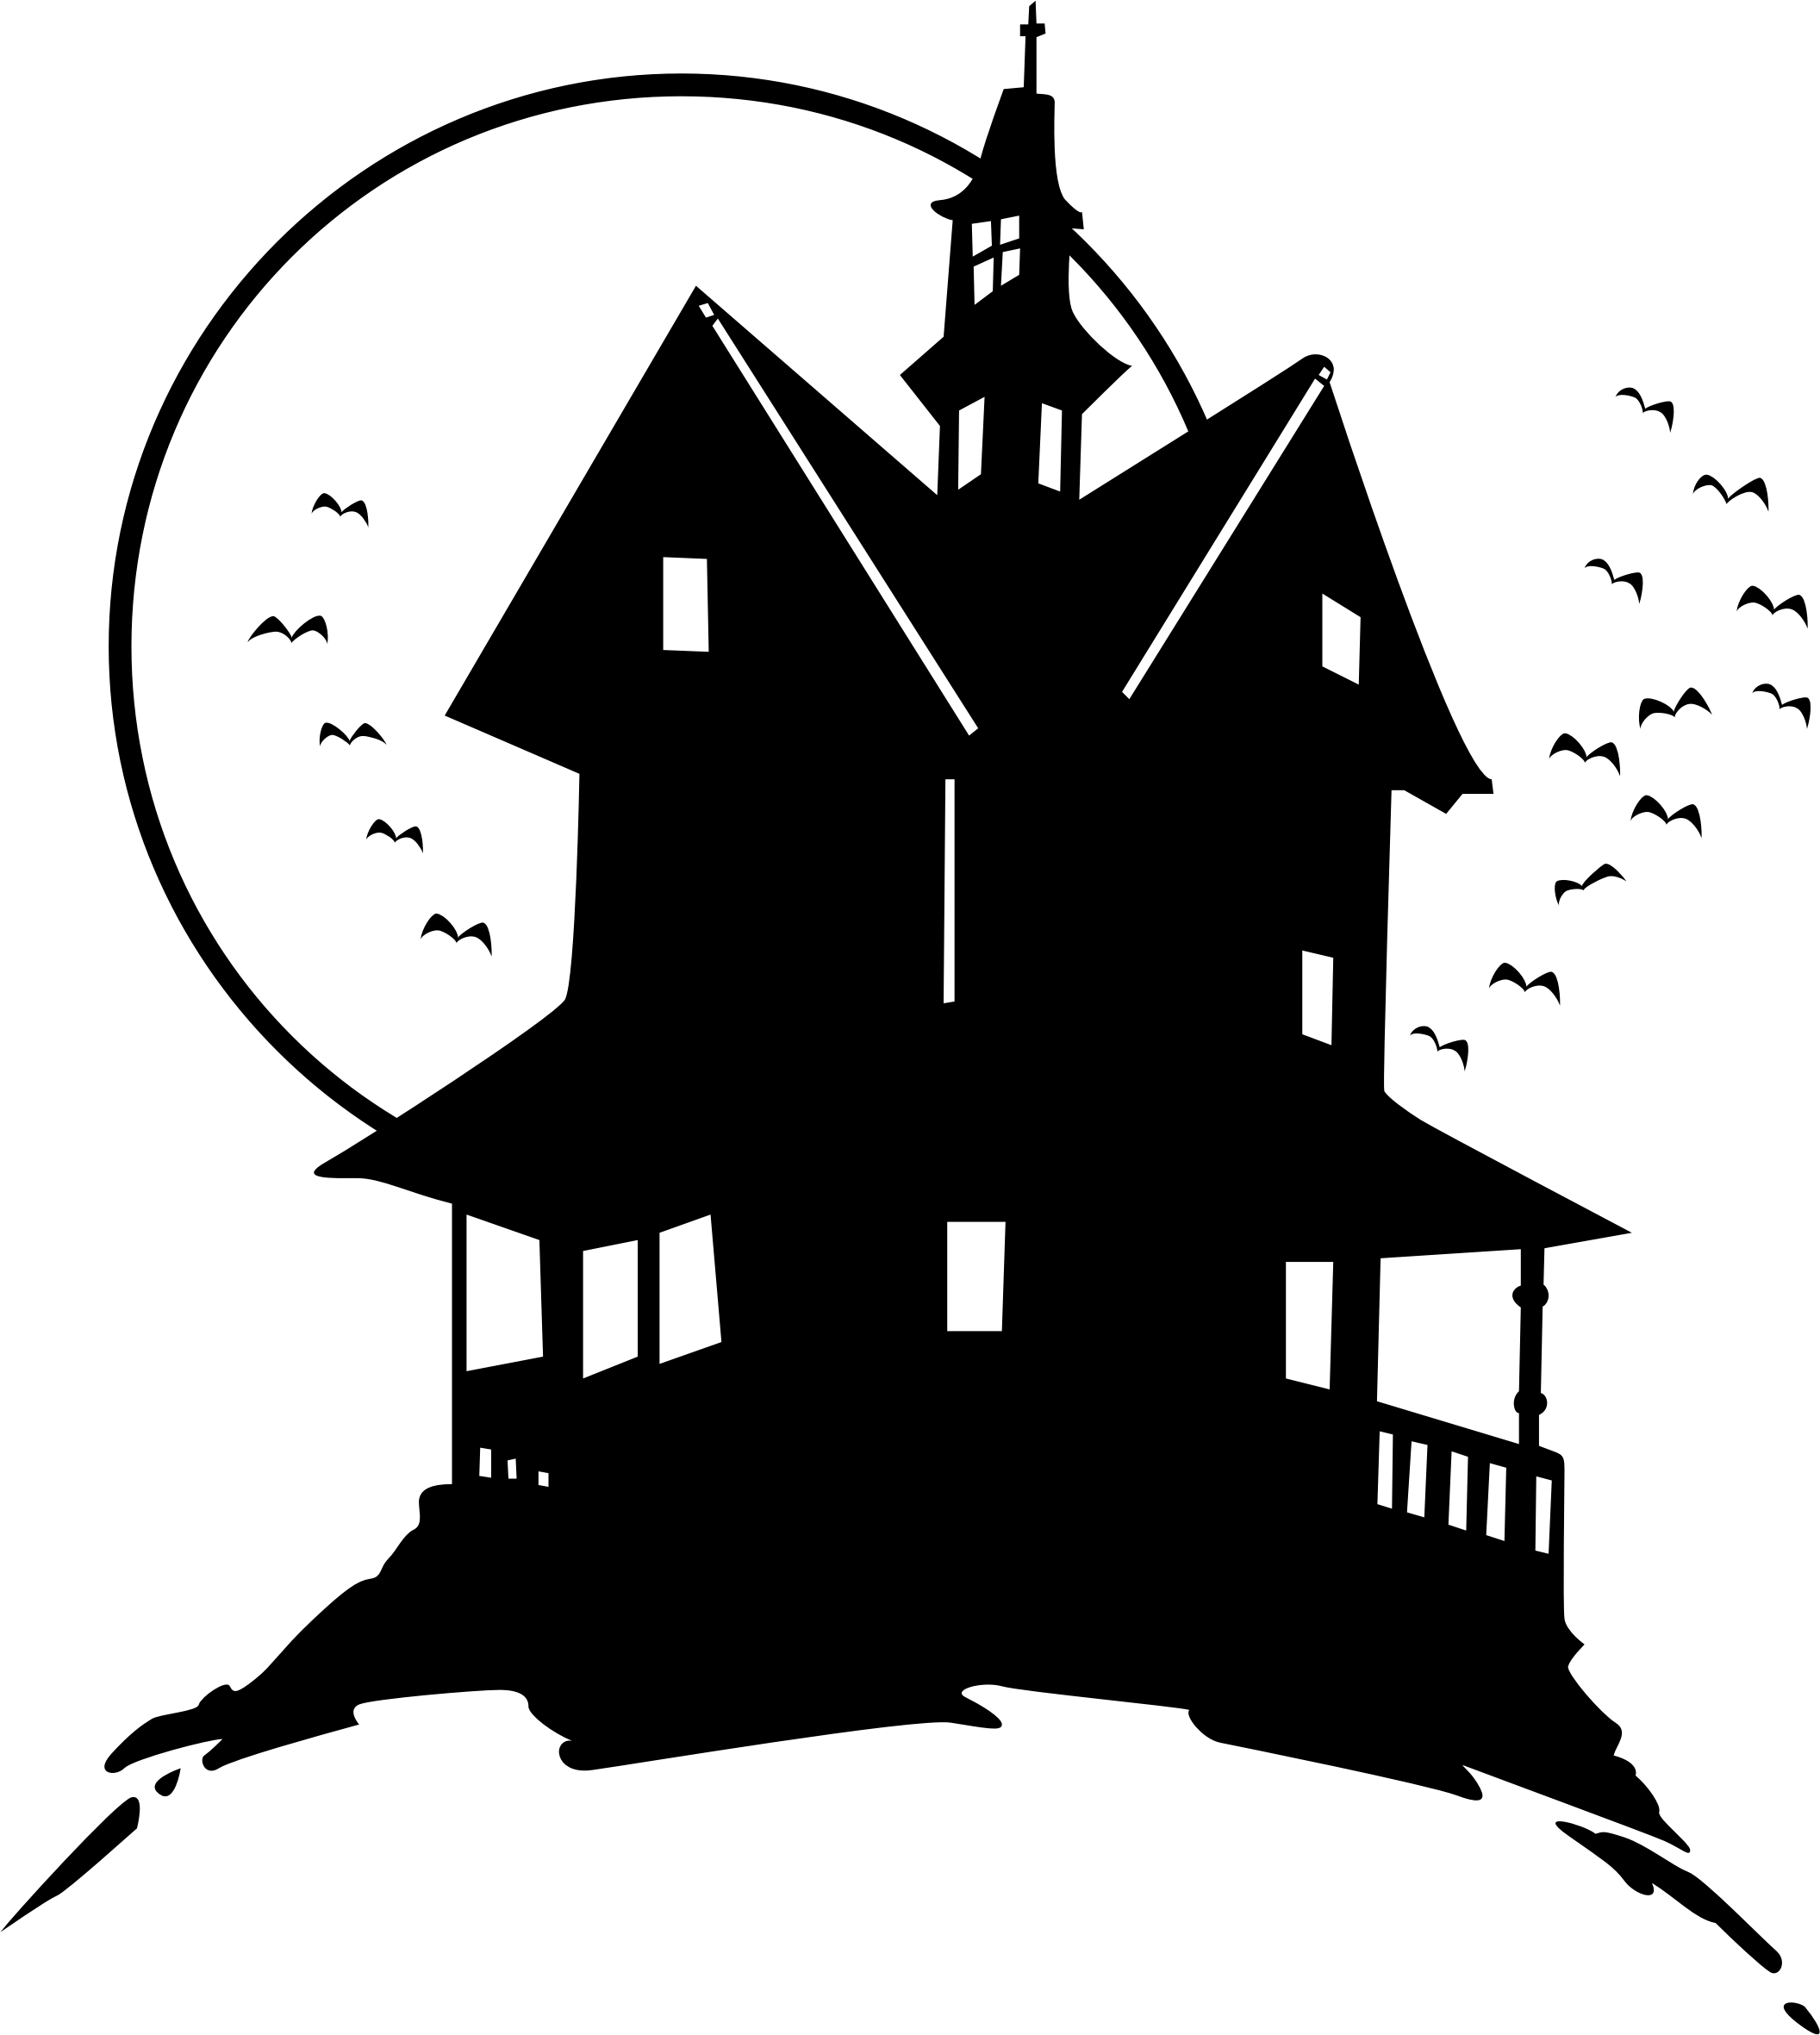 House on a hill clipart graphic free download Clipart - haunted house on the hill graphic free download